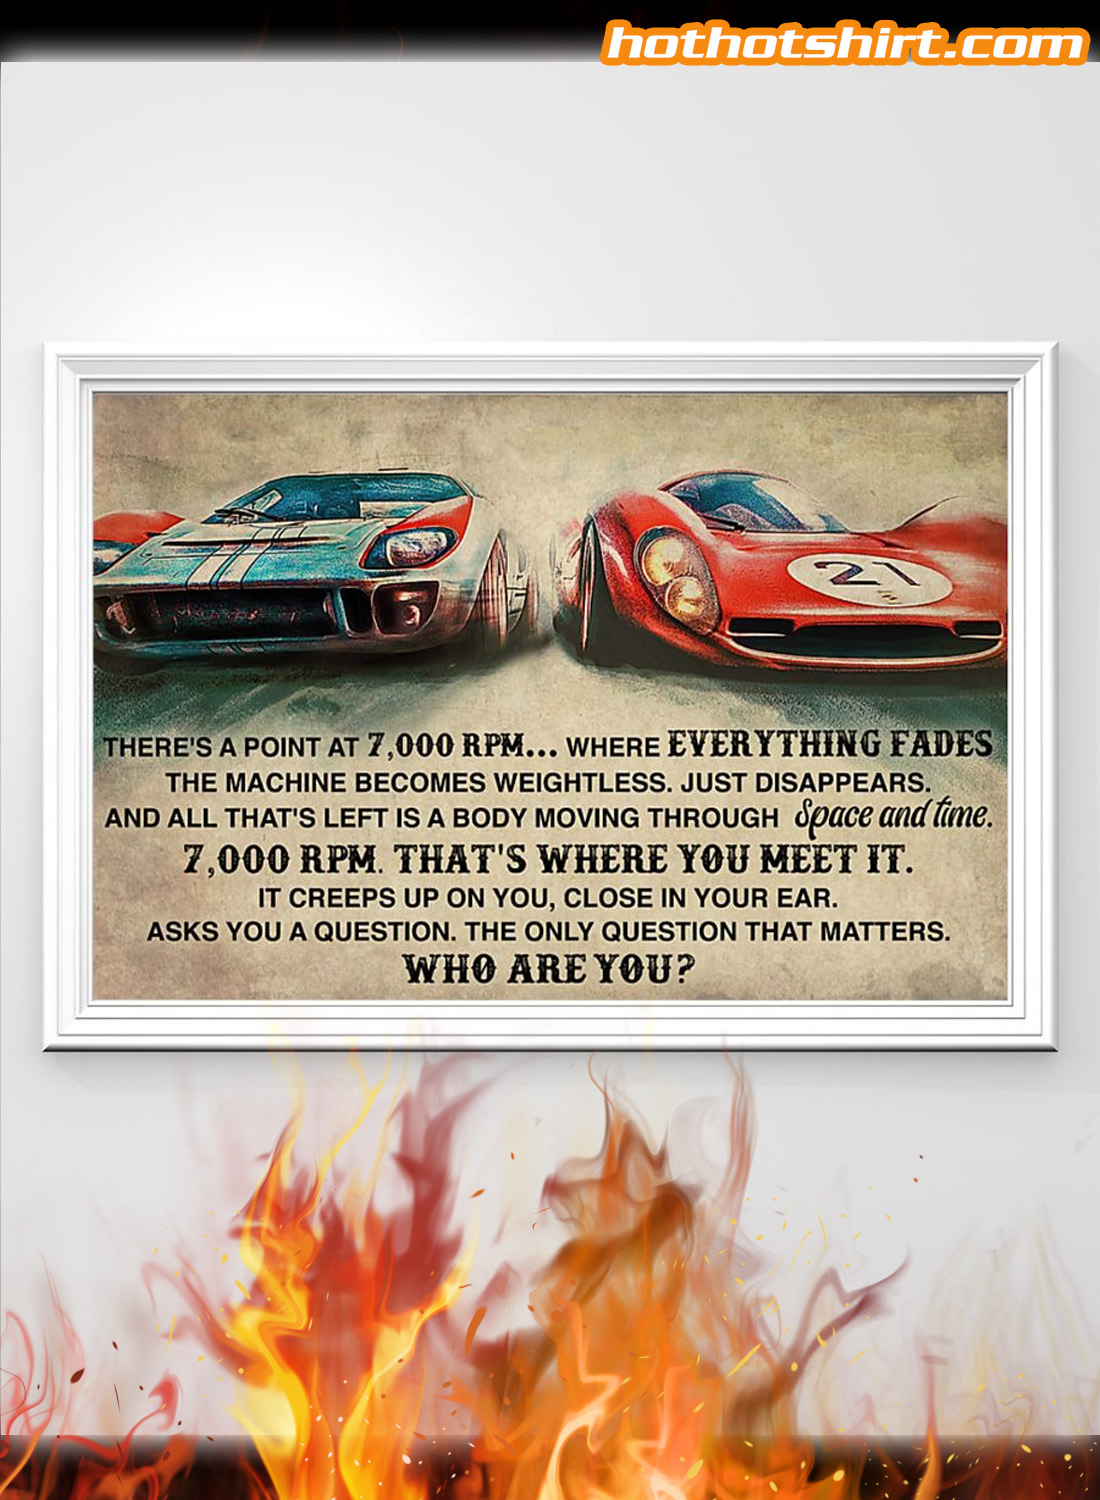 Car racing there's a point at 7000 RPM poster